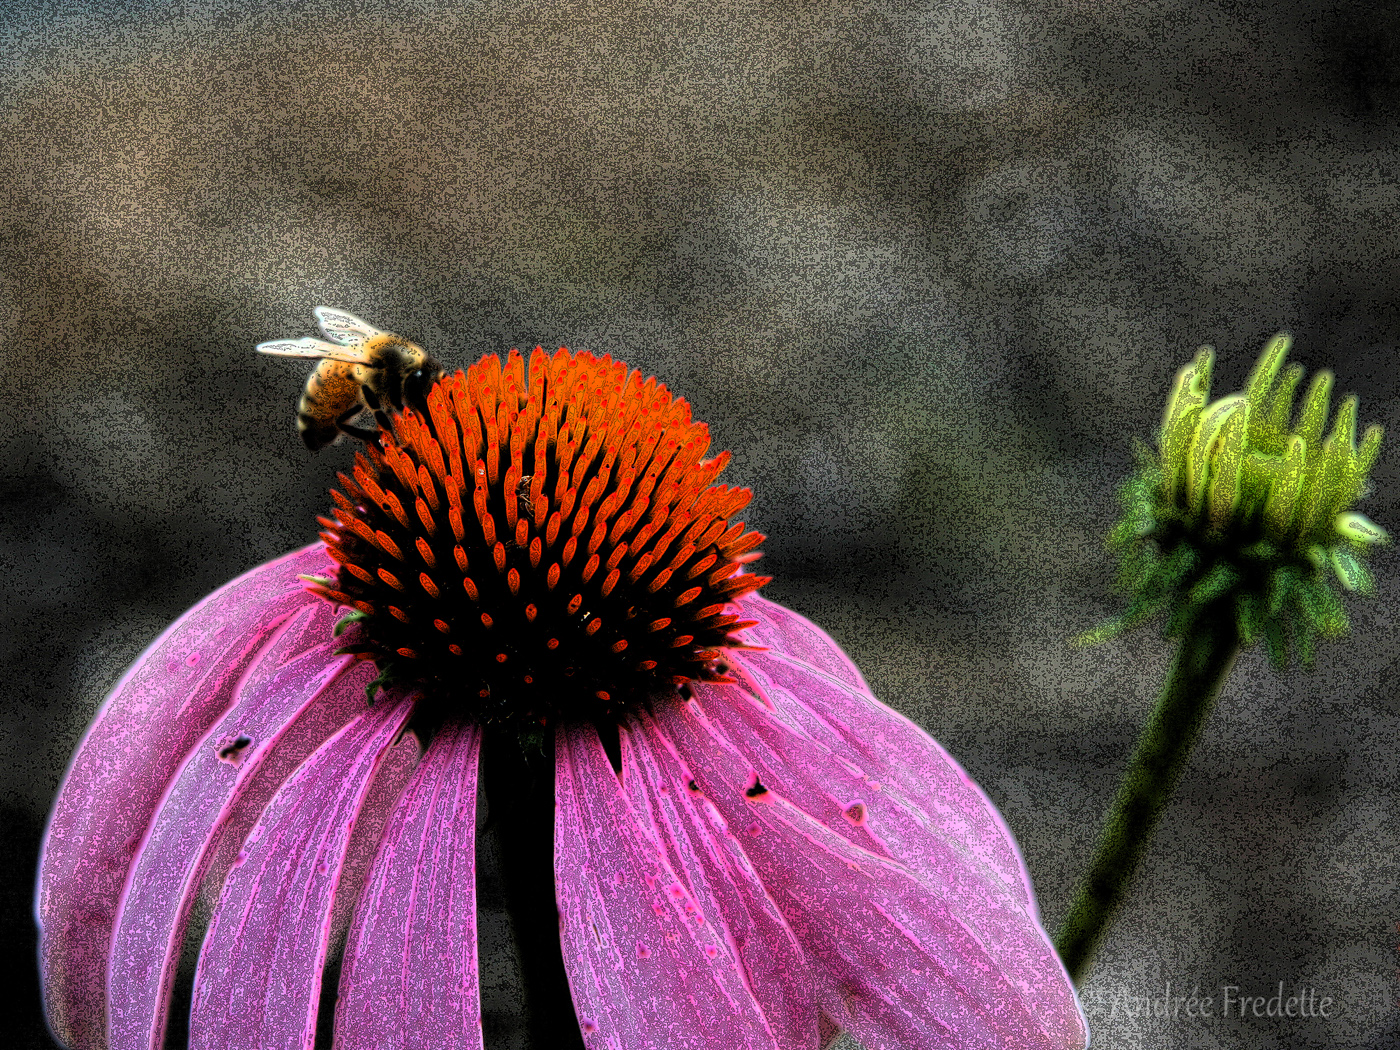 Bee on Echinacea. Photo by Andrée Fredette